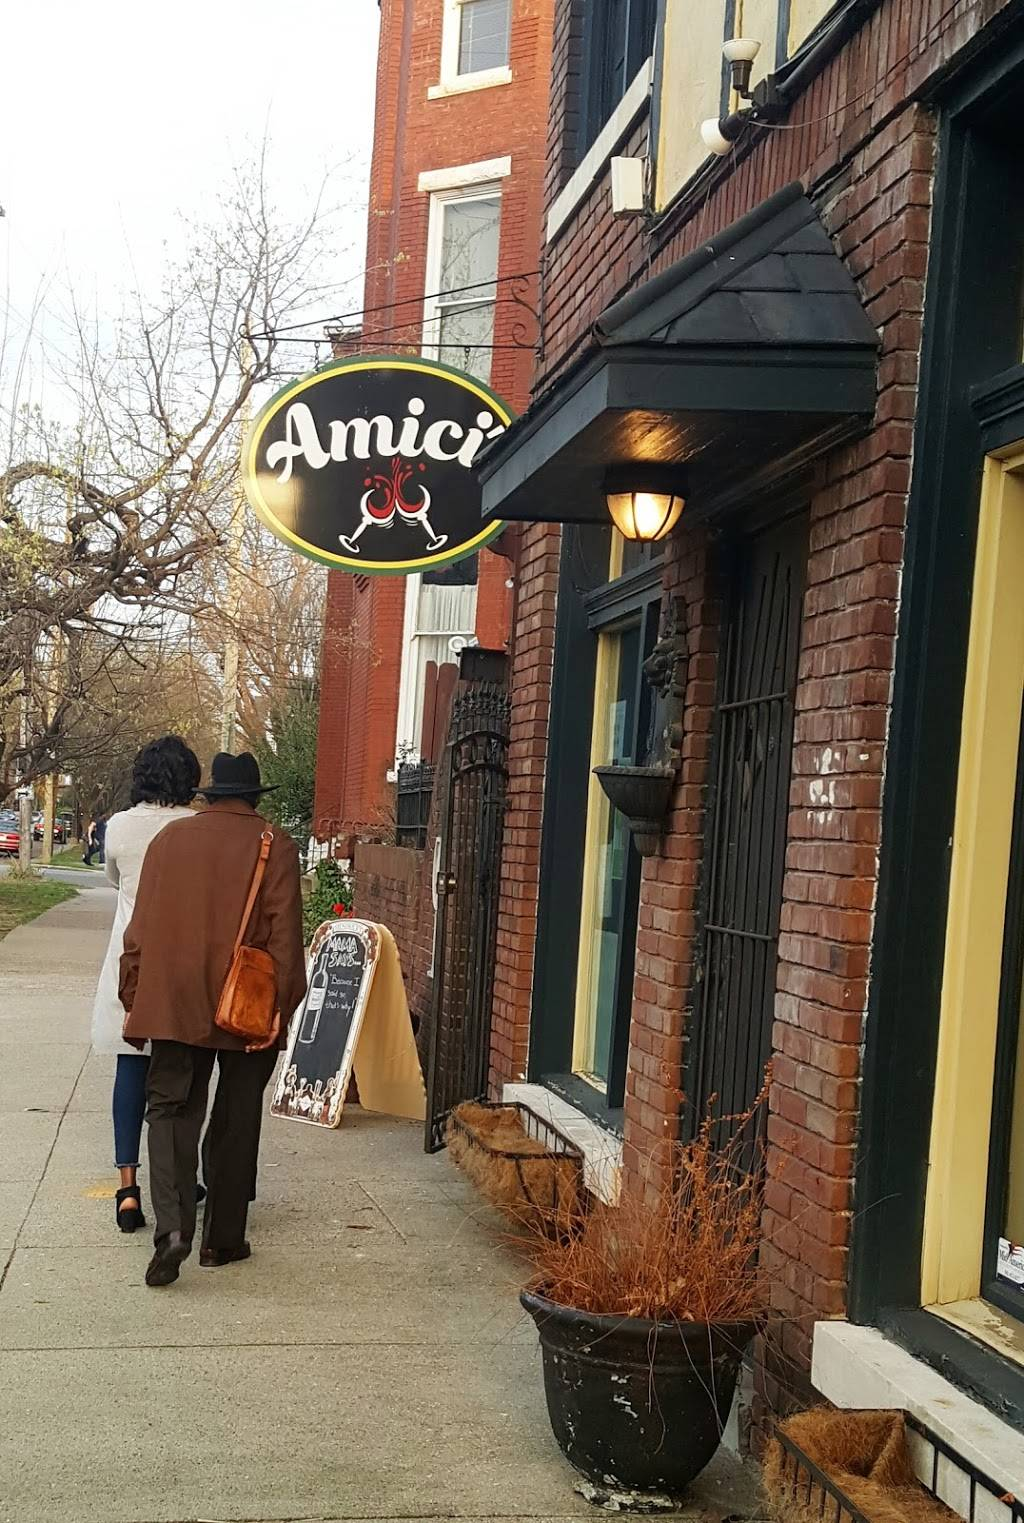 Amici Cafe - cafe    Photo 4 of 9   Address: 316 W Ormsby Ave, Louisville, KY 40203, USA   Phone: (502) 637-3167